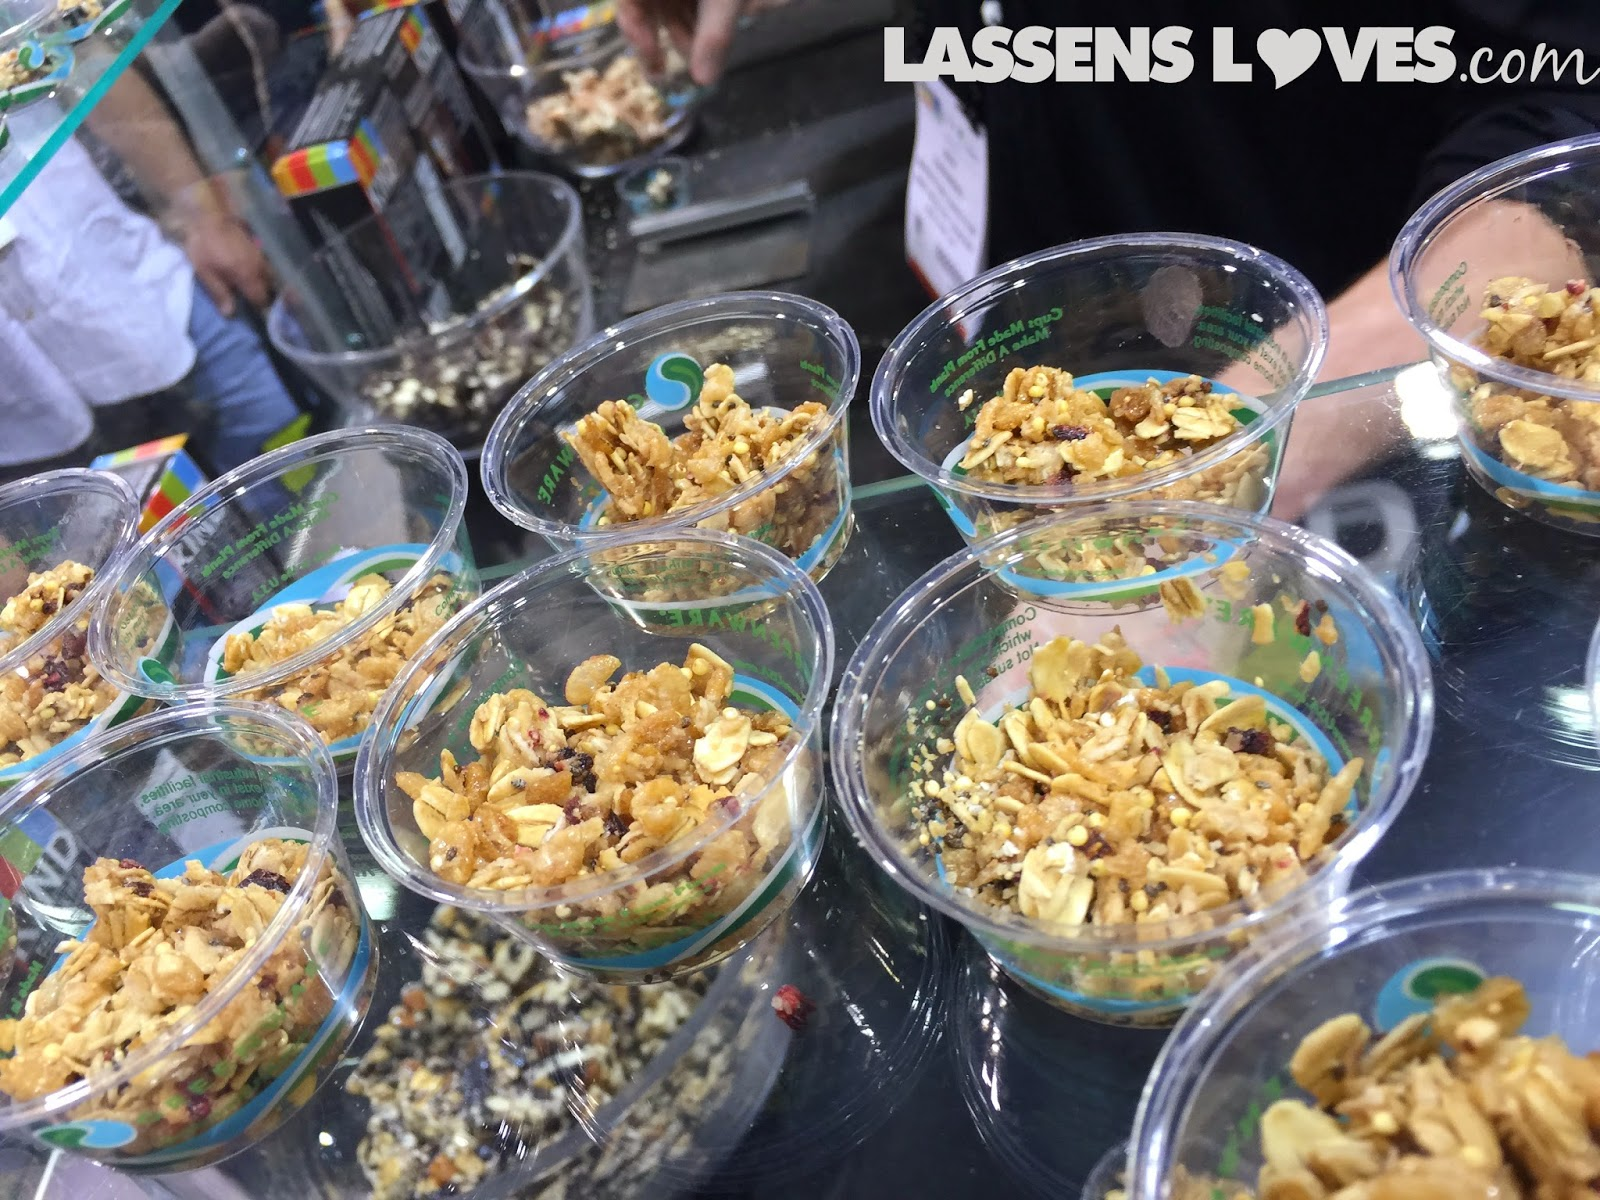 Expo+West+2015, Natural+Foods+Show, New+Natural+Products, Kind+granola